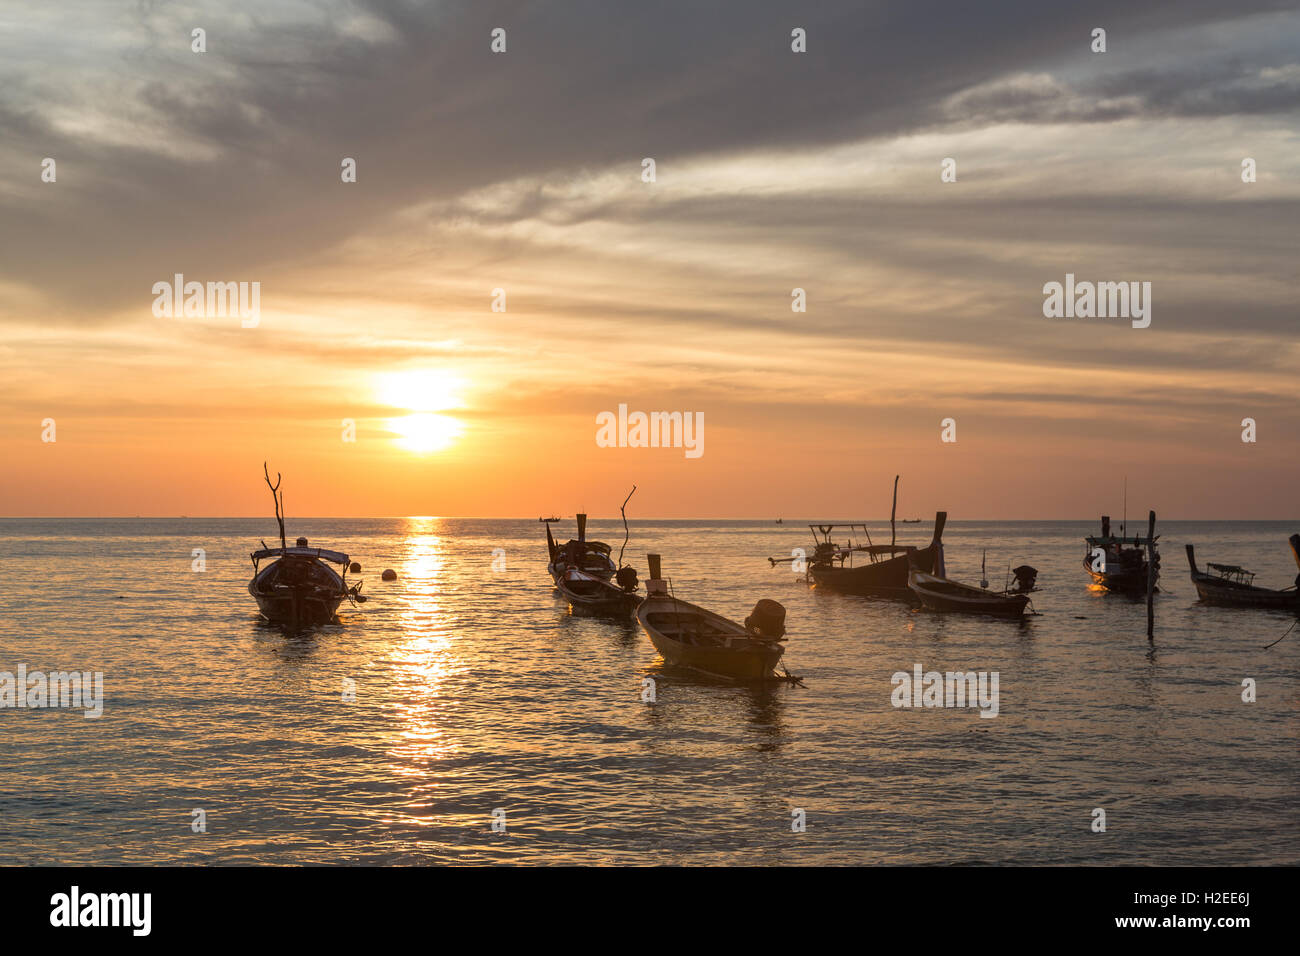 Sunset over long tails boats in Koh Lanta in Krabi province in south Thailand. - Stock Image